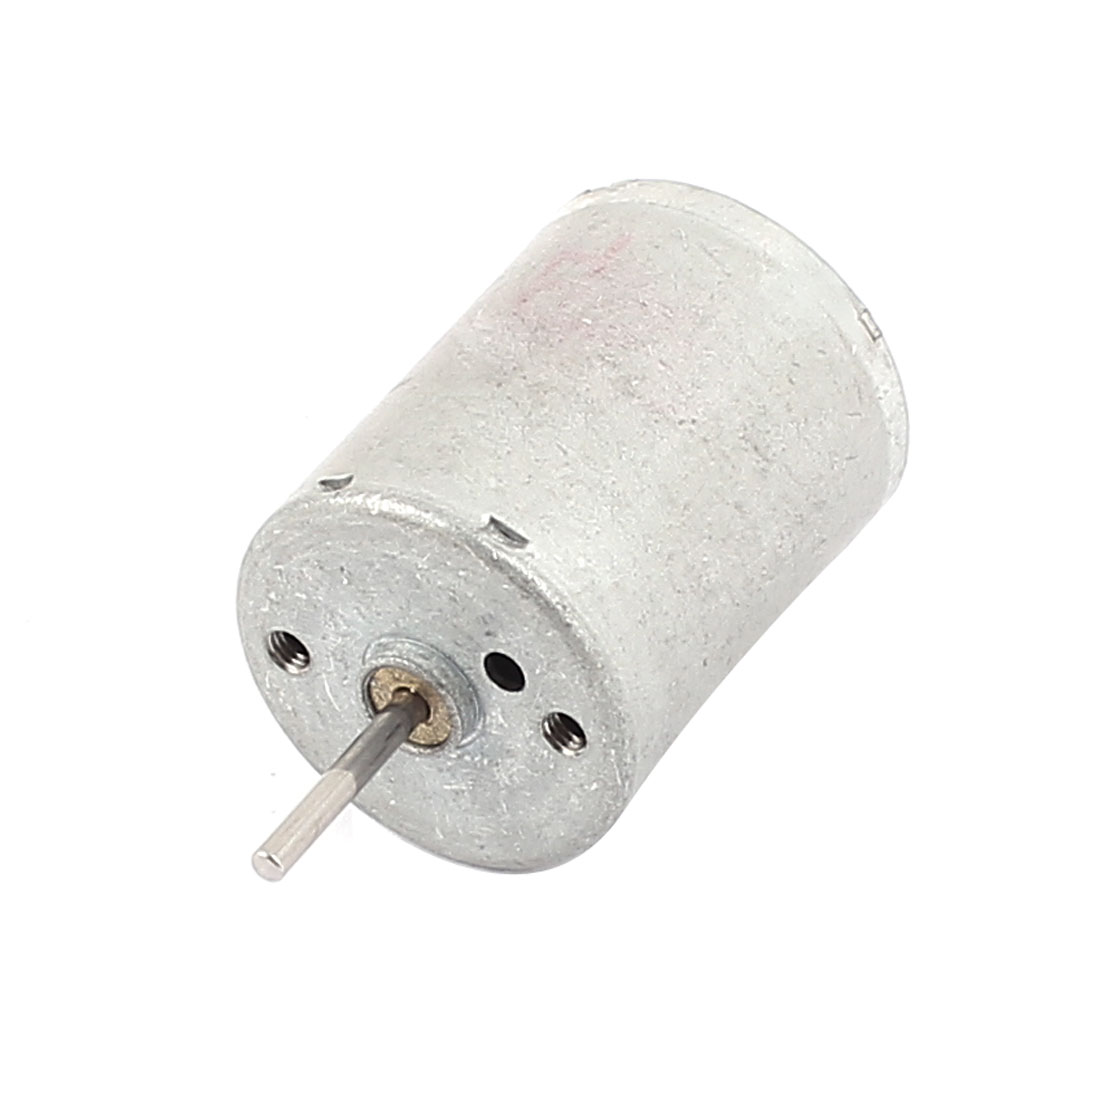 3V 3000RPM High Speed 2mm Shaft 24mm Dia Cylindrical Electric Micro DC Motor